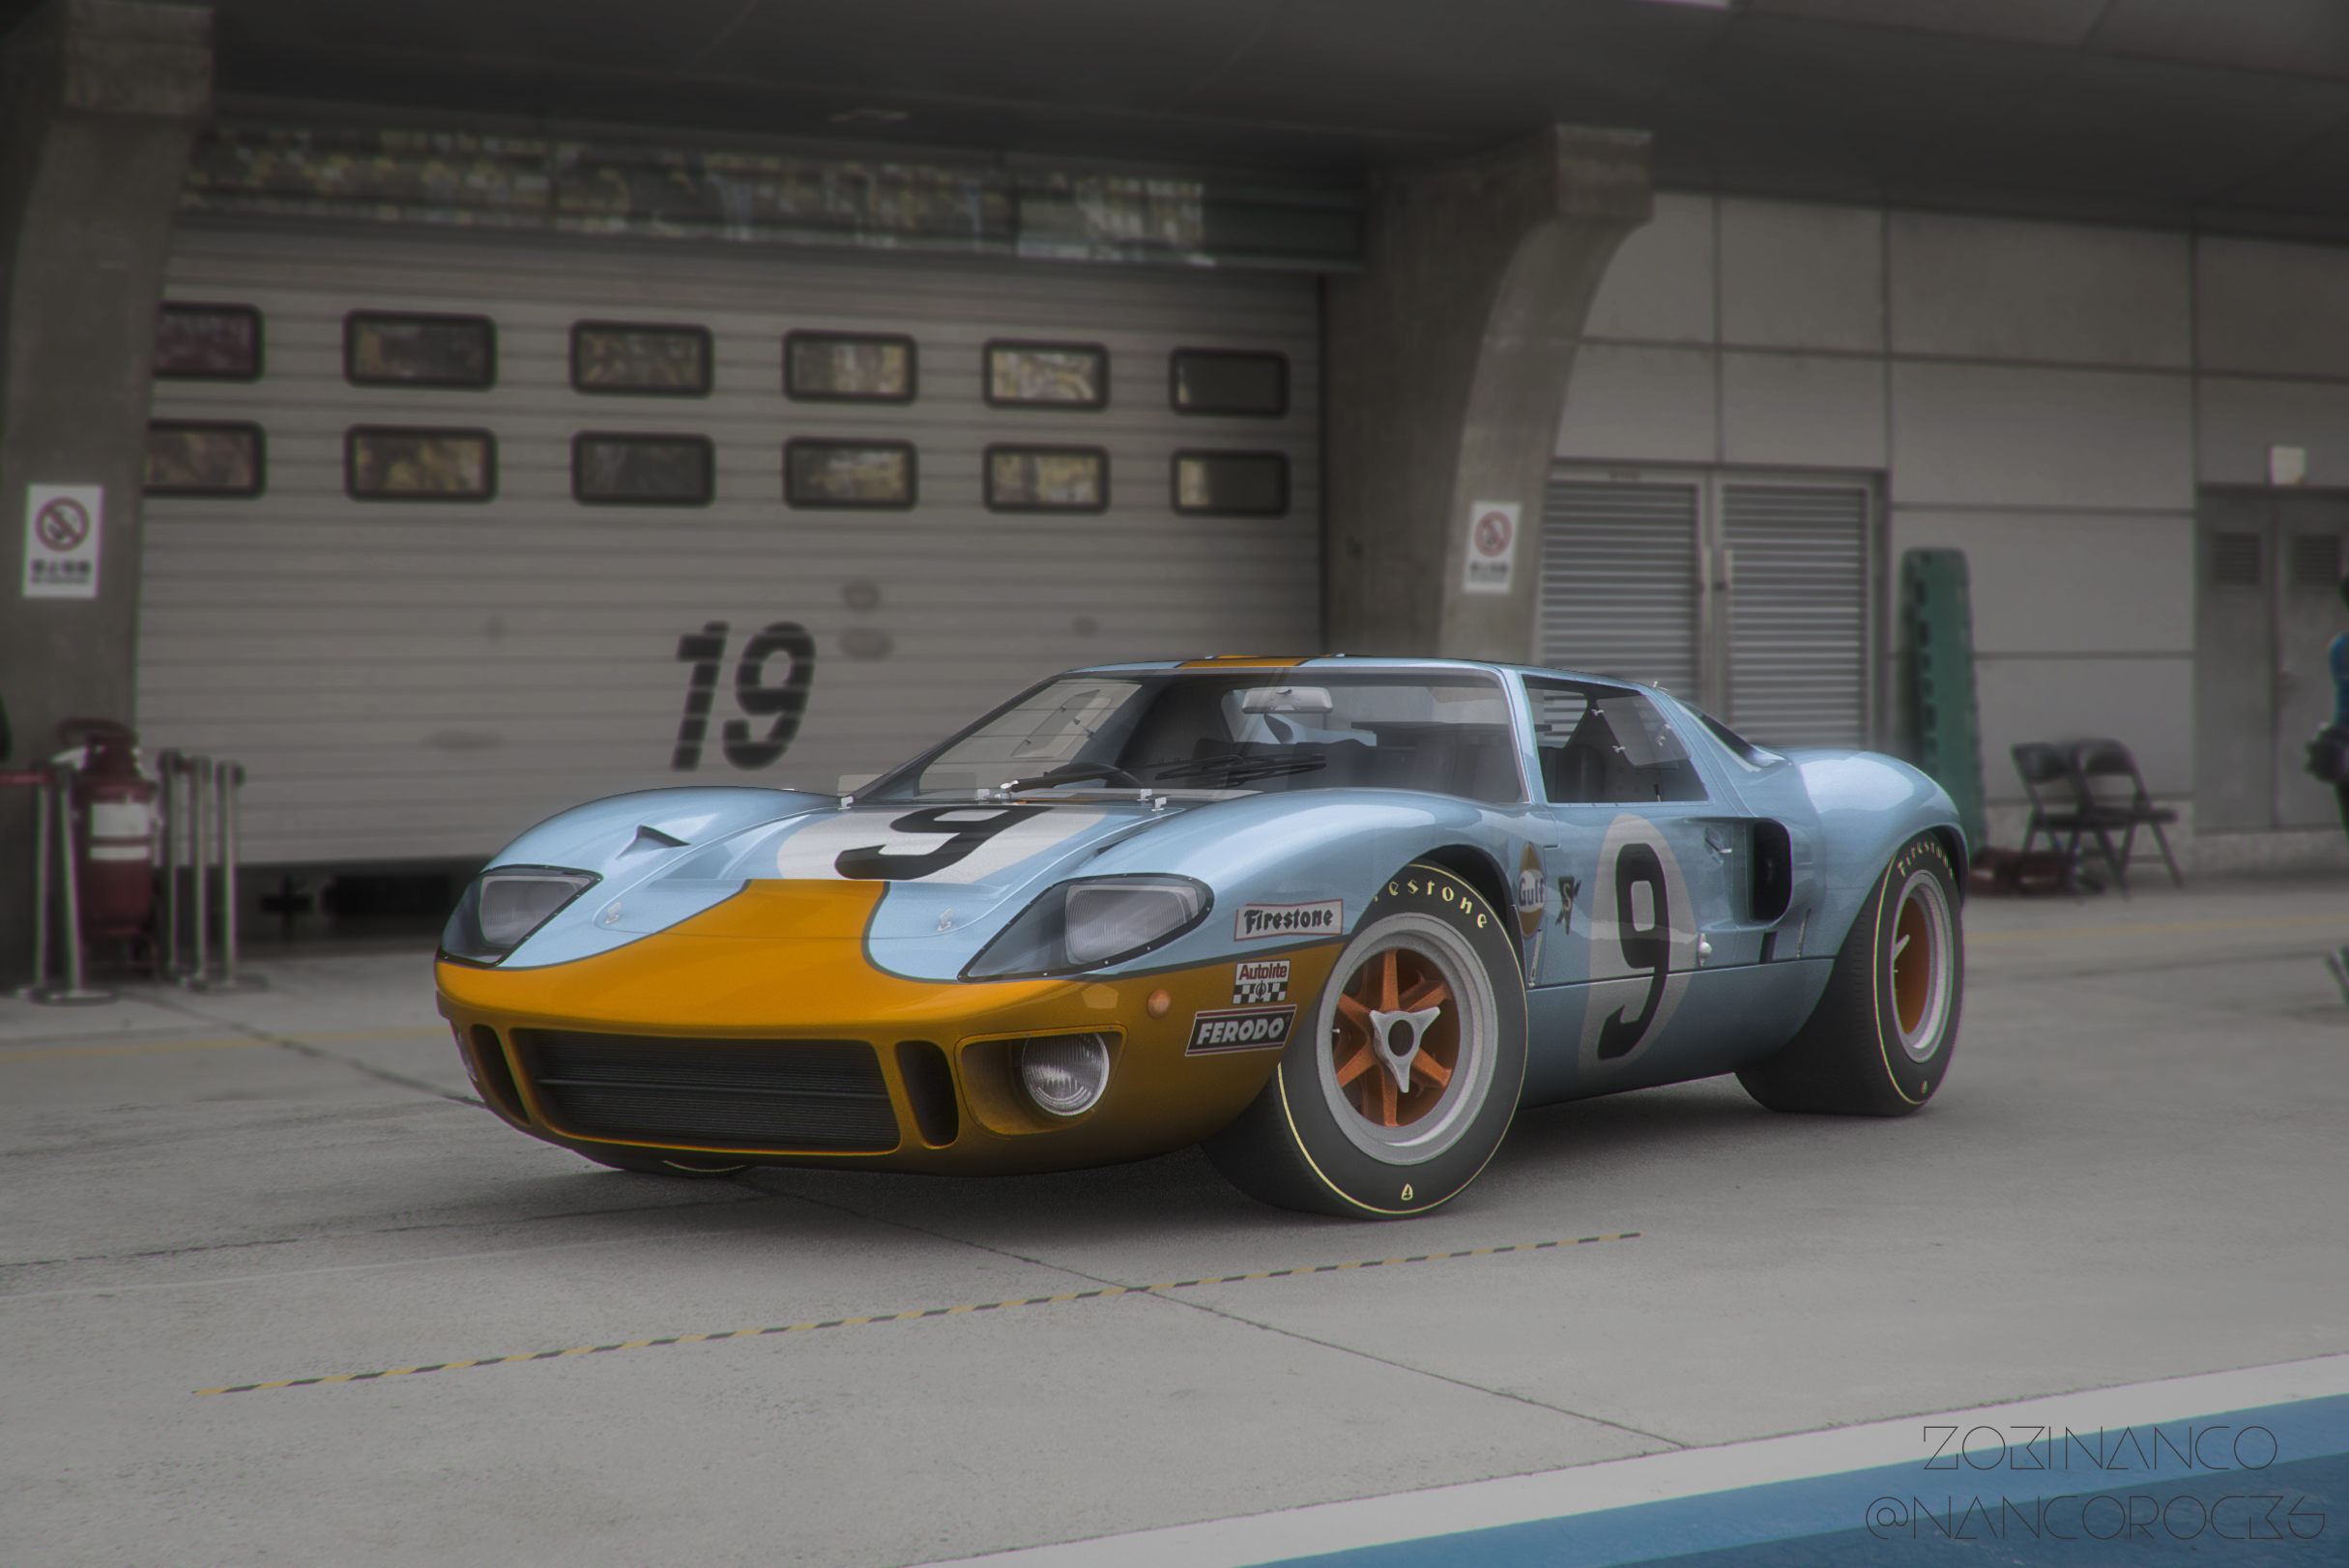 2016 ford gt gulf with Ford Gt40 Mk1 653343676 on Ford Gt 40 1969 Alain Jamar furthermore Ford Now Taking Orders New Gt Sports Car besides 333 Ford Gt40 Wallpaper 7 moreover Porsche 917 The Best Everywhere likewise Lemans2015.